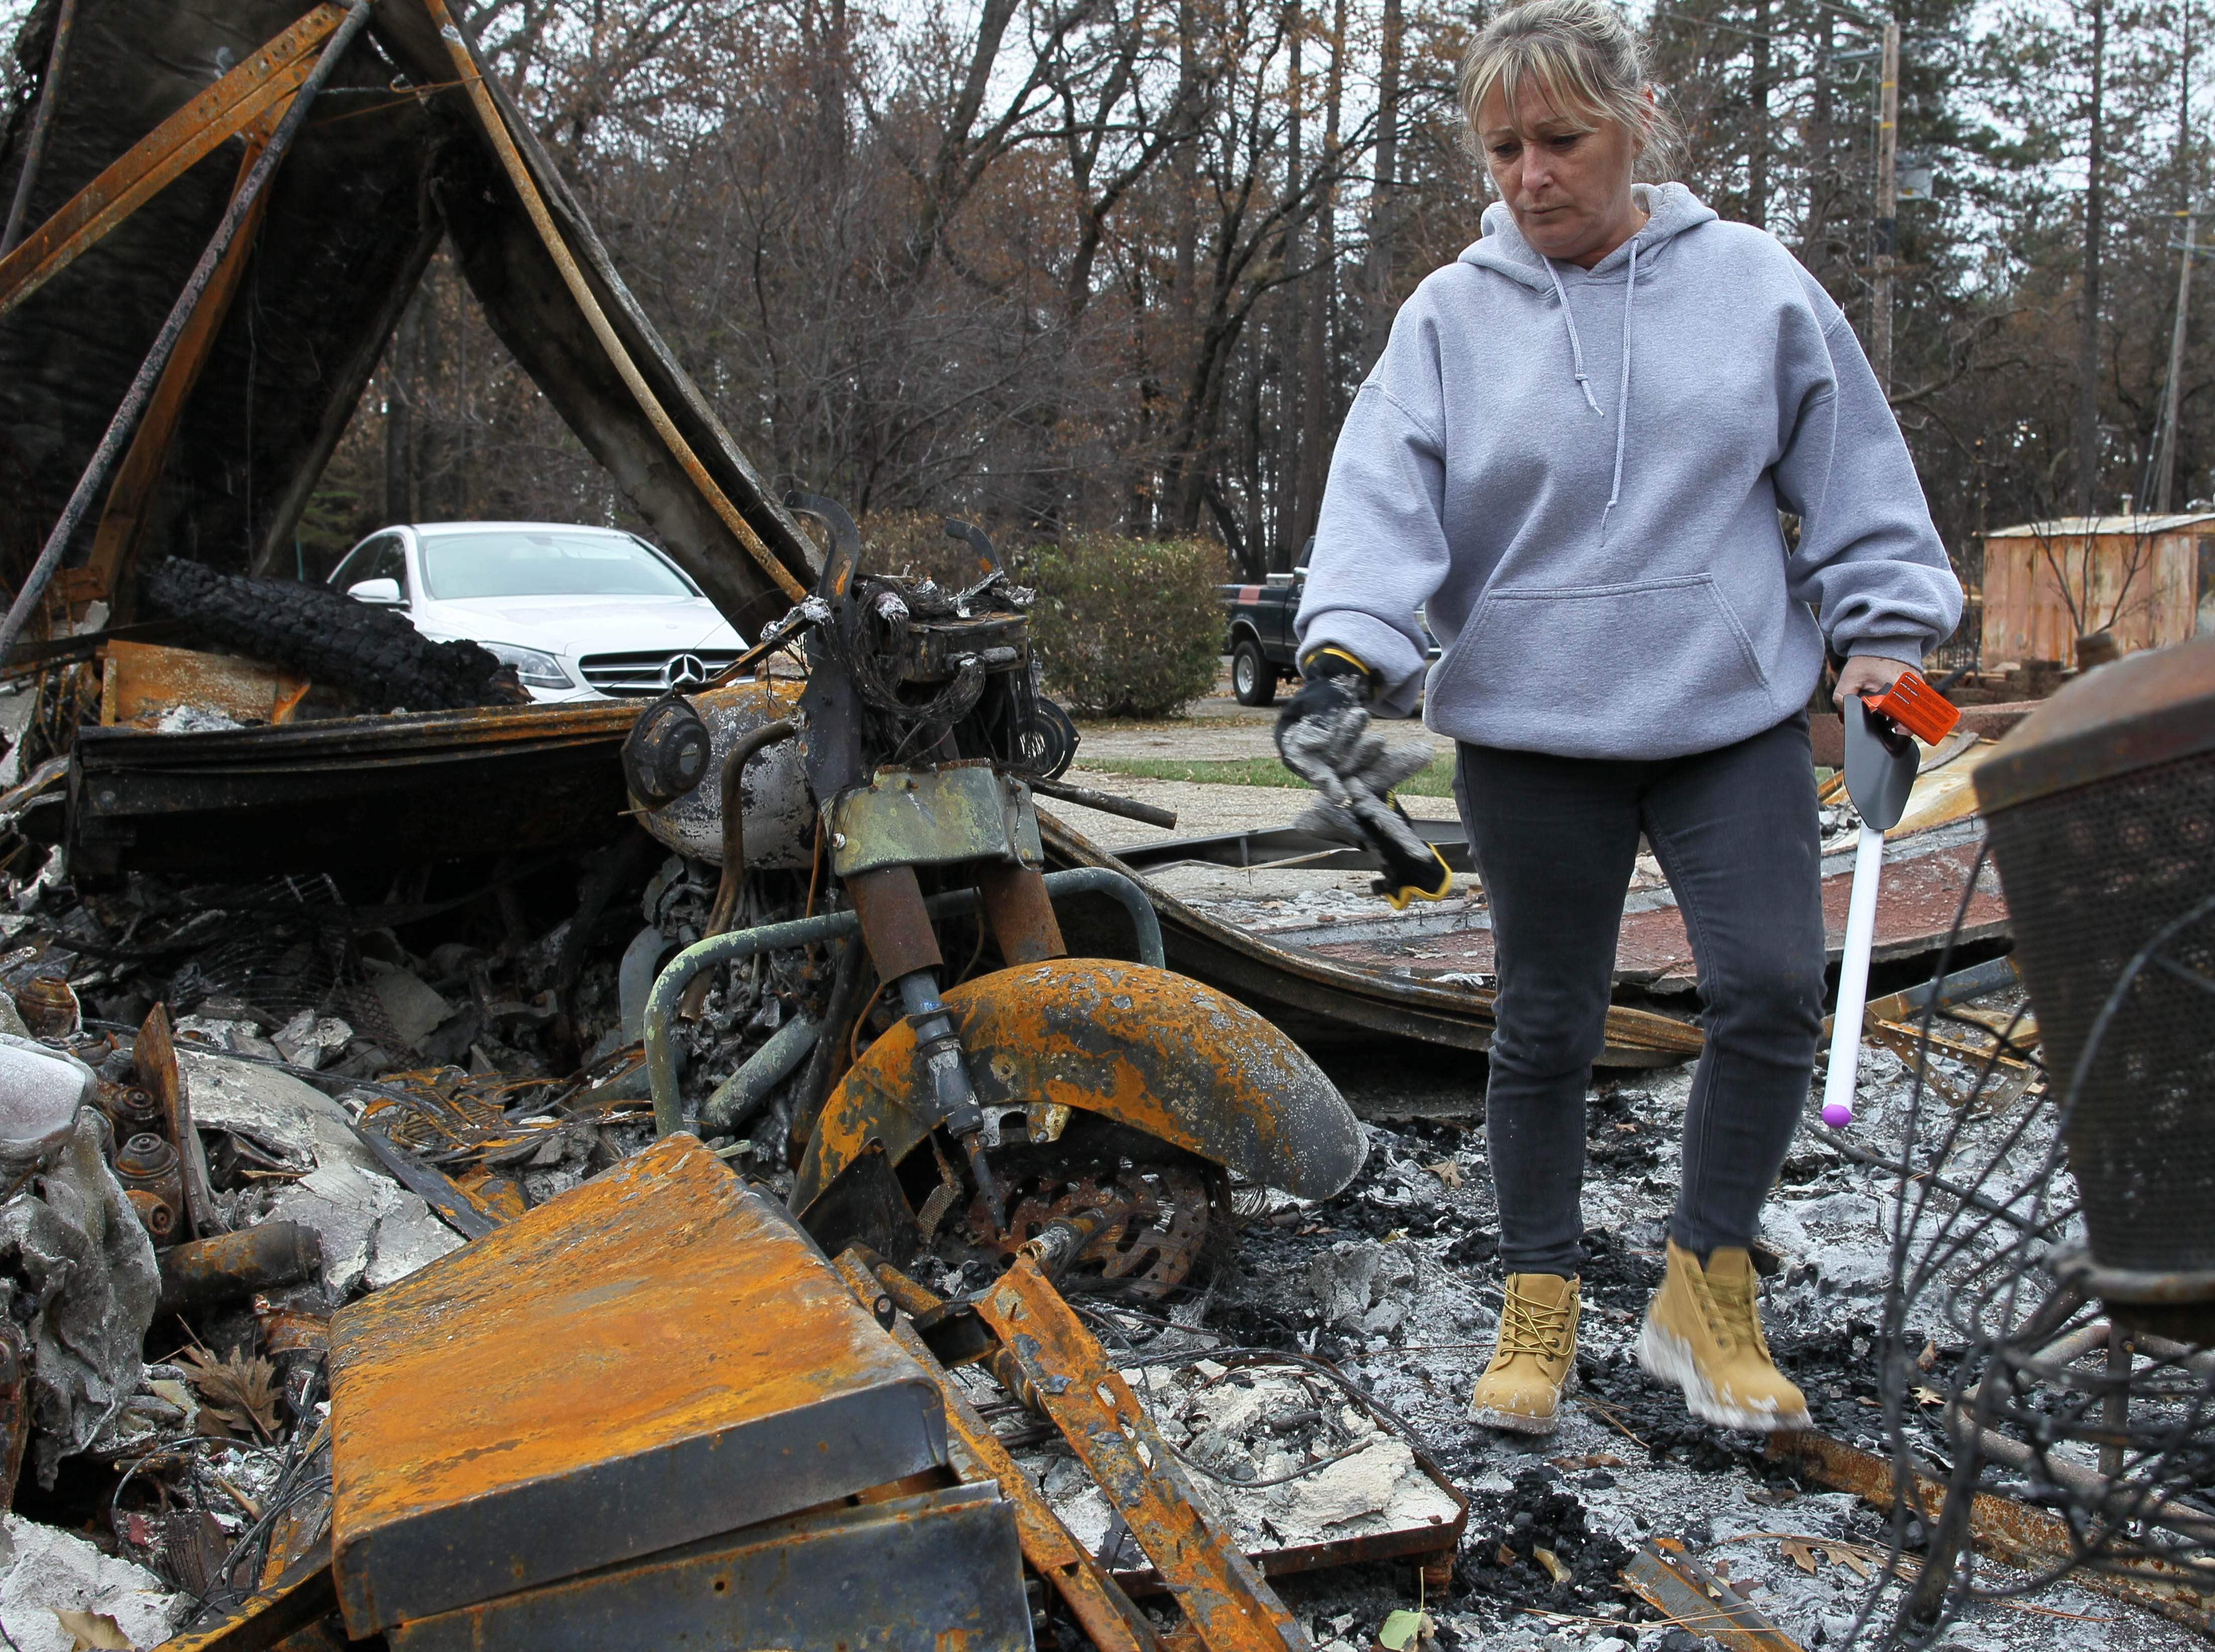 Tina Torres walks through her burned house on Tuesday. It was the first day she and other Paradise residents were allowed to return to their home sites since they were evacuated during the Camp Fire on Nov. 8, 2018. (Hung T. Vu/Special to the Record Searchlight)